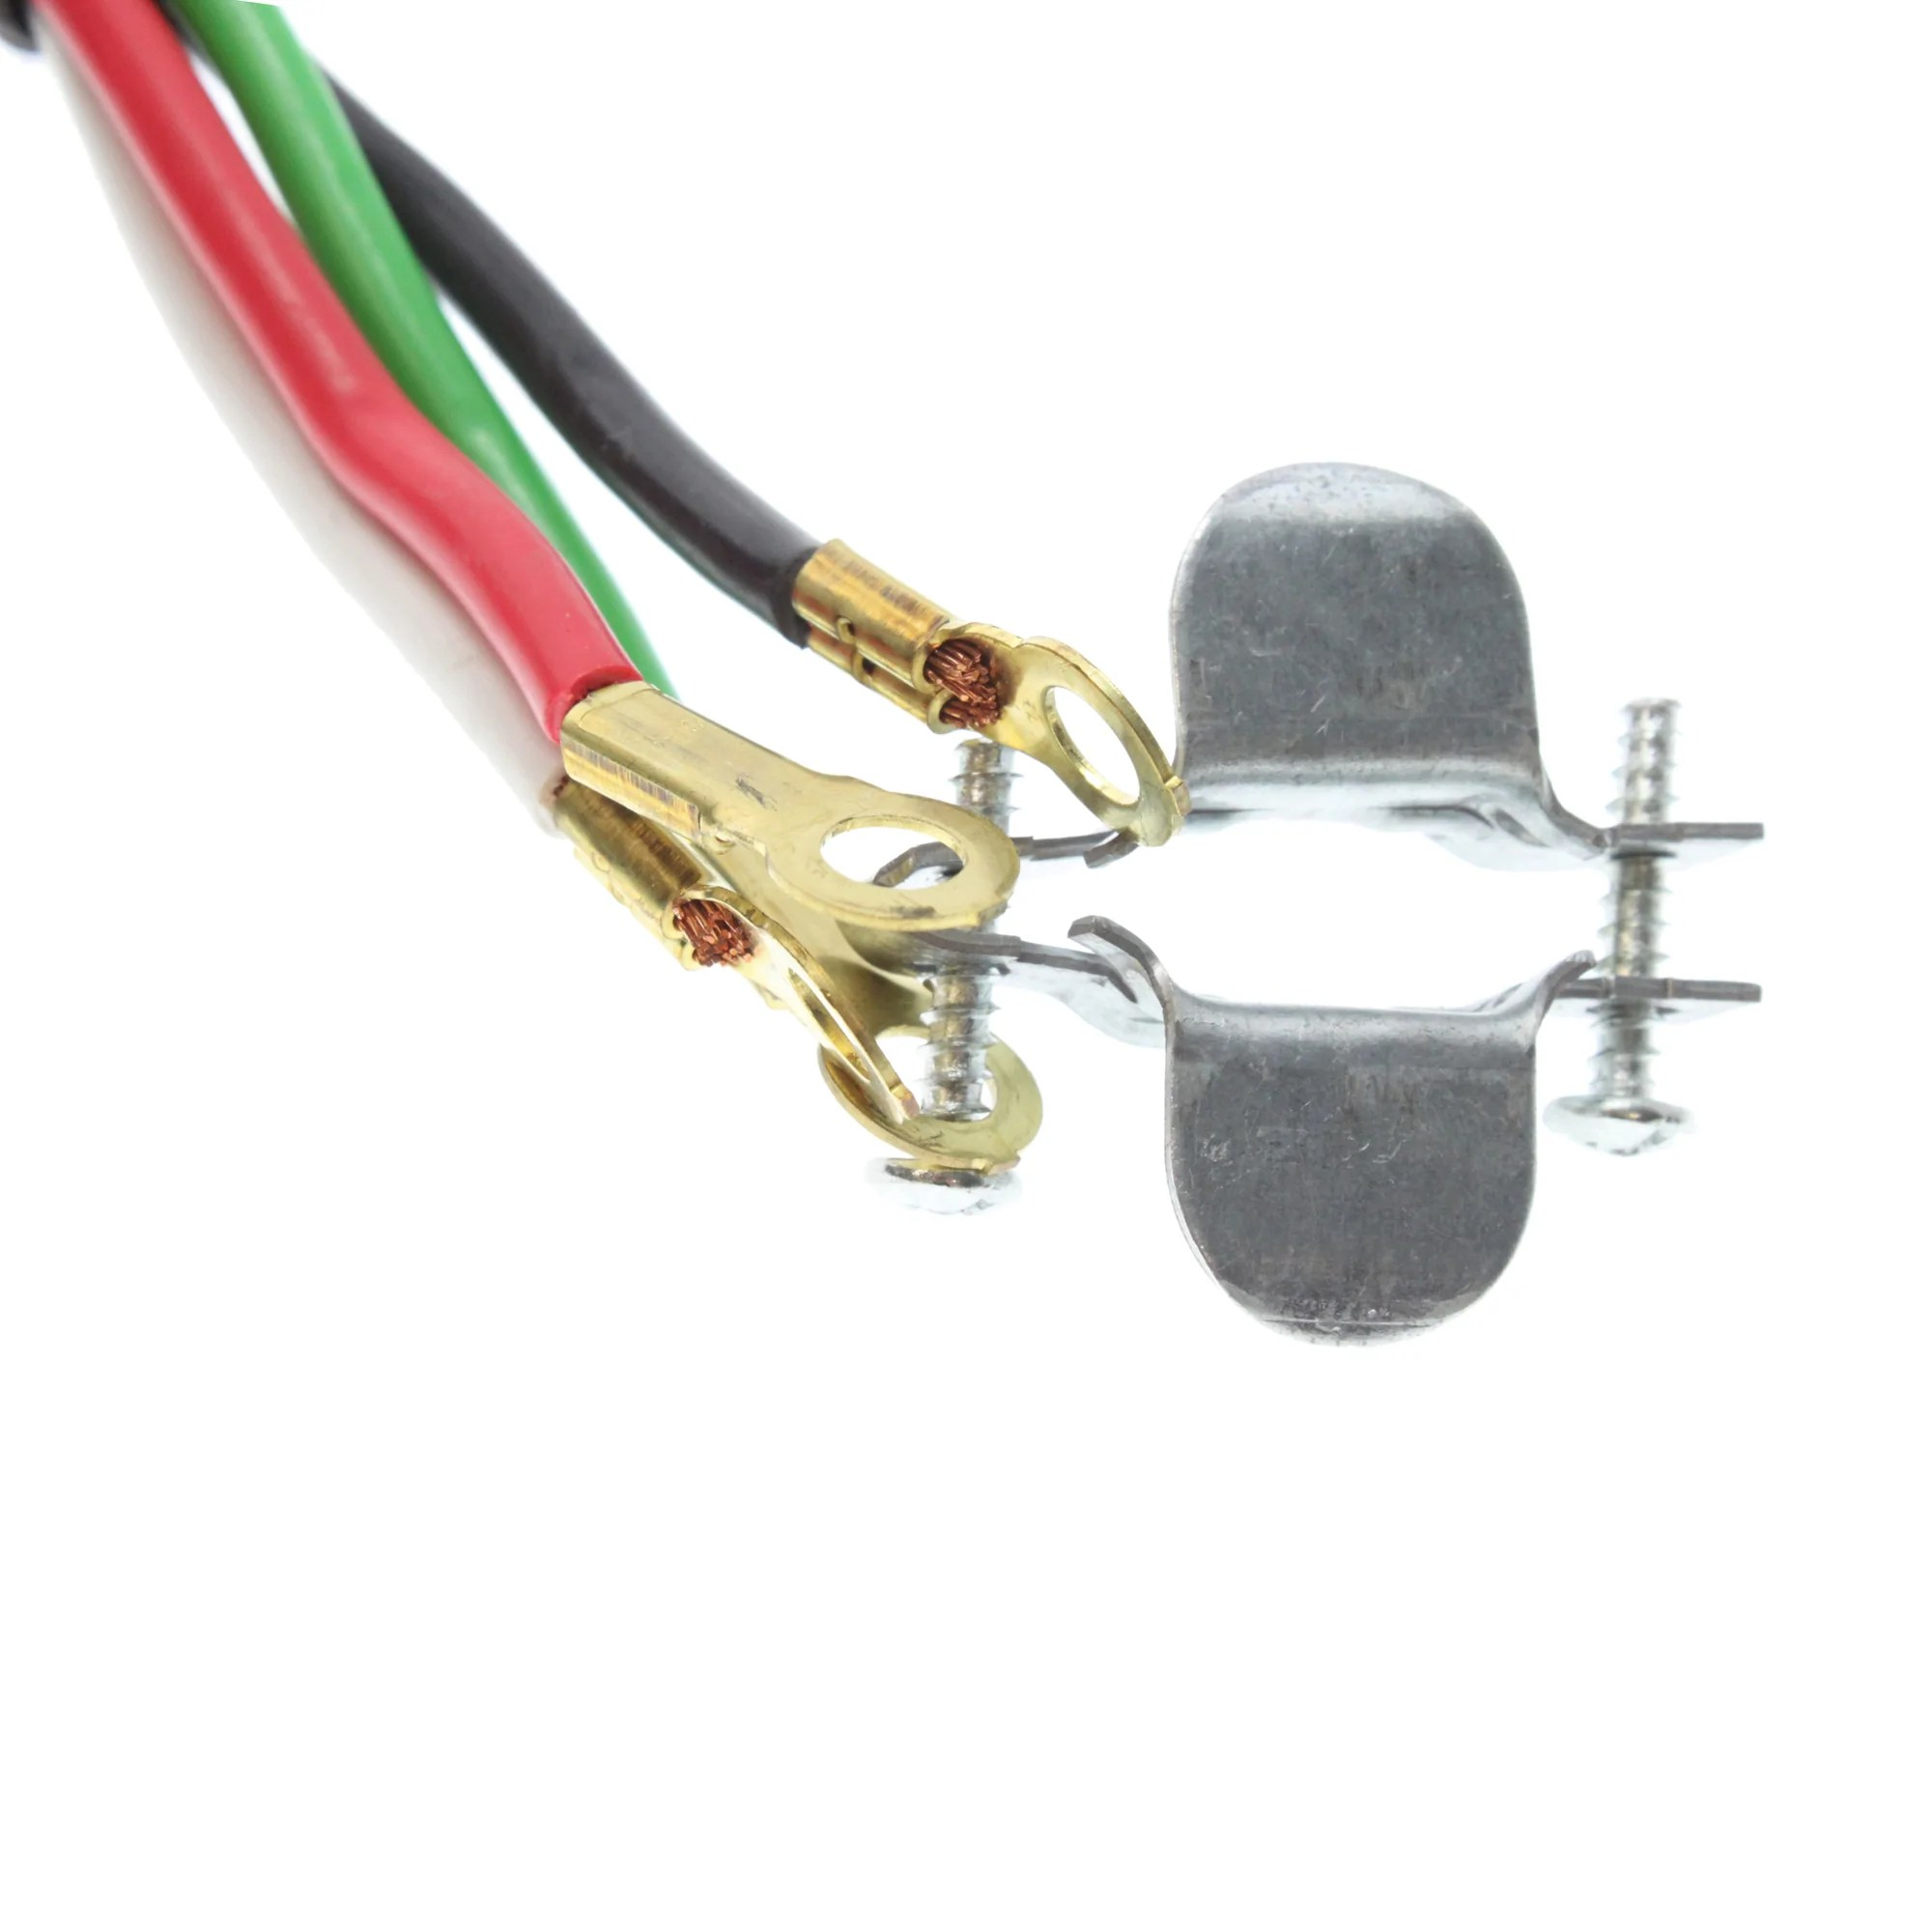 hight resolution of american insulated wire a5434006bl dryer cord w plug 30a nema 14 30p 6 feet